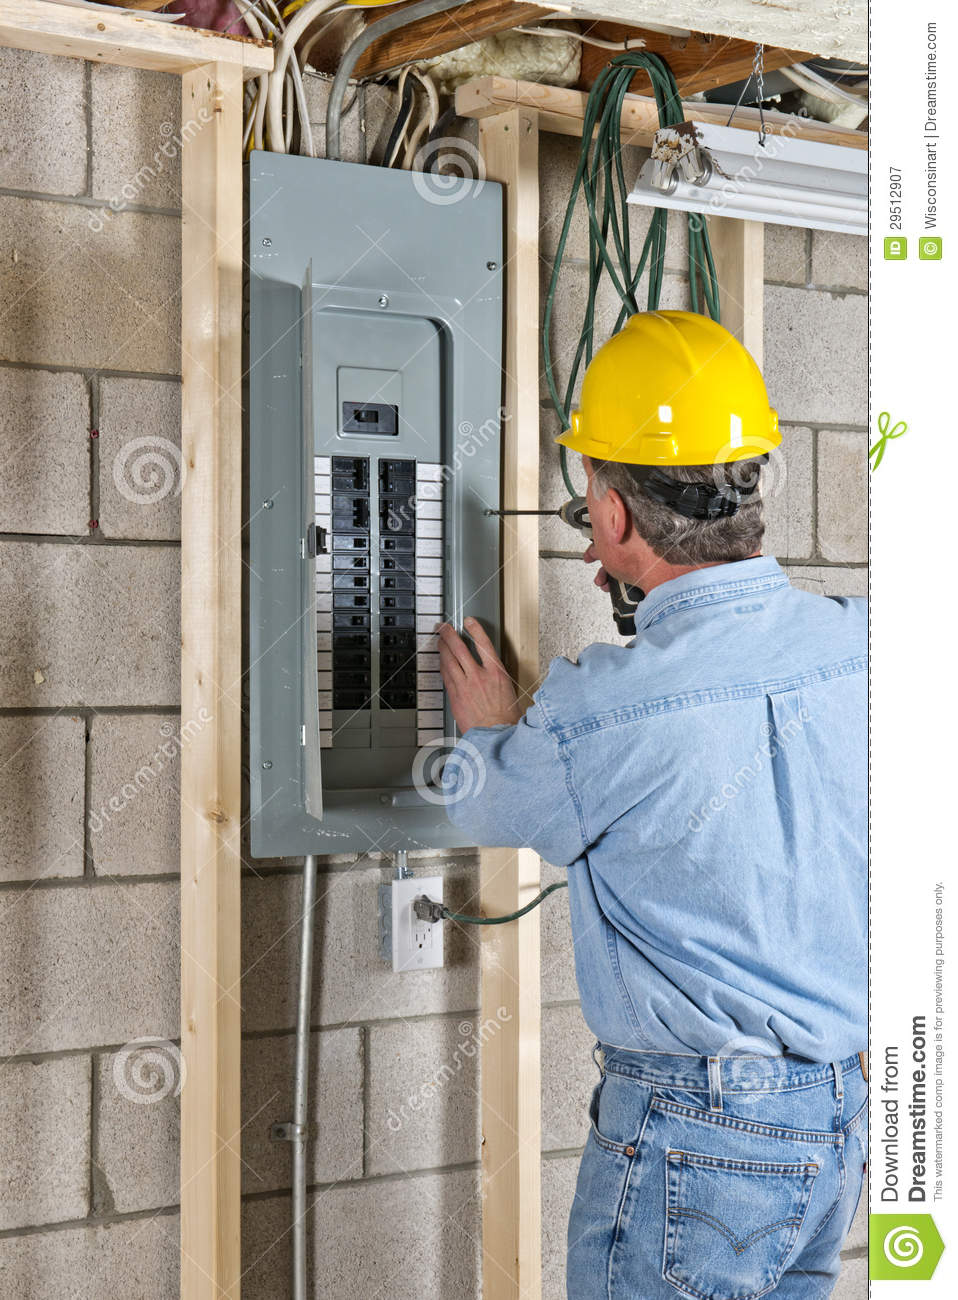 Electrician Contractor Construction Worker Stock Image - Image of ...